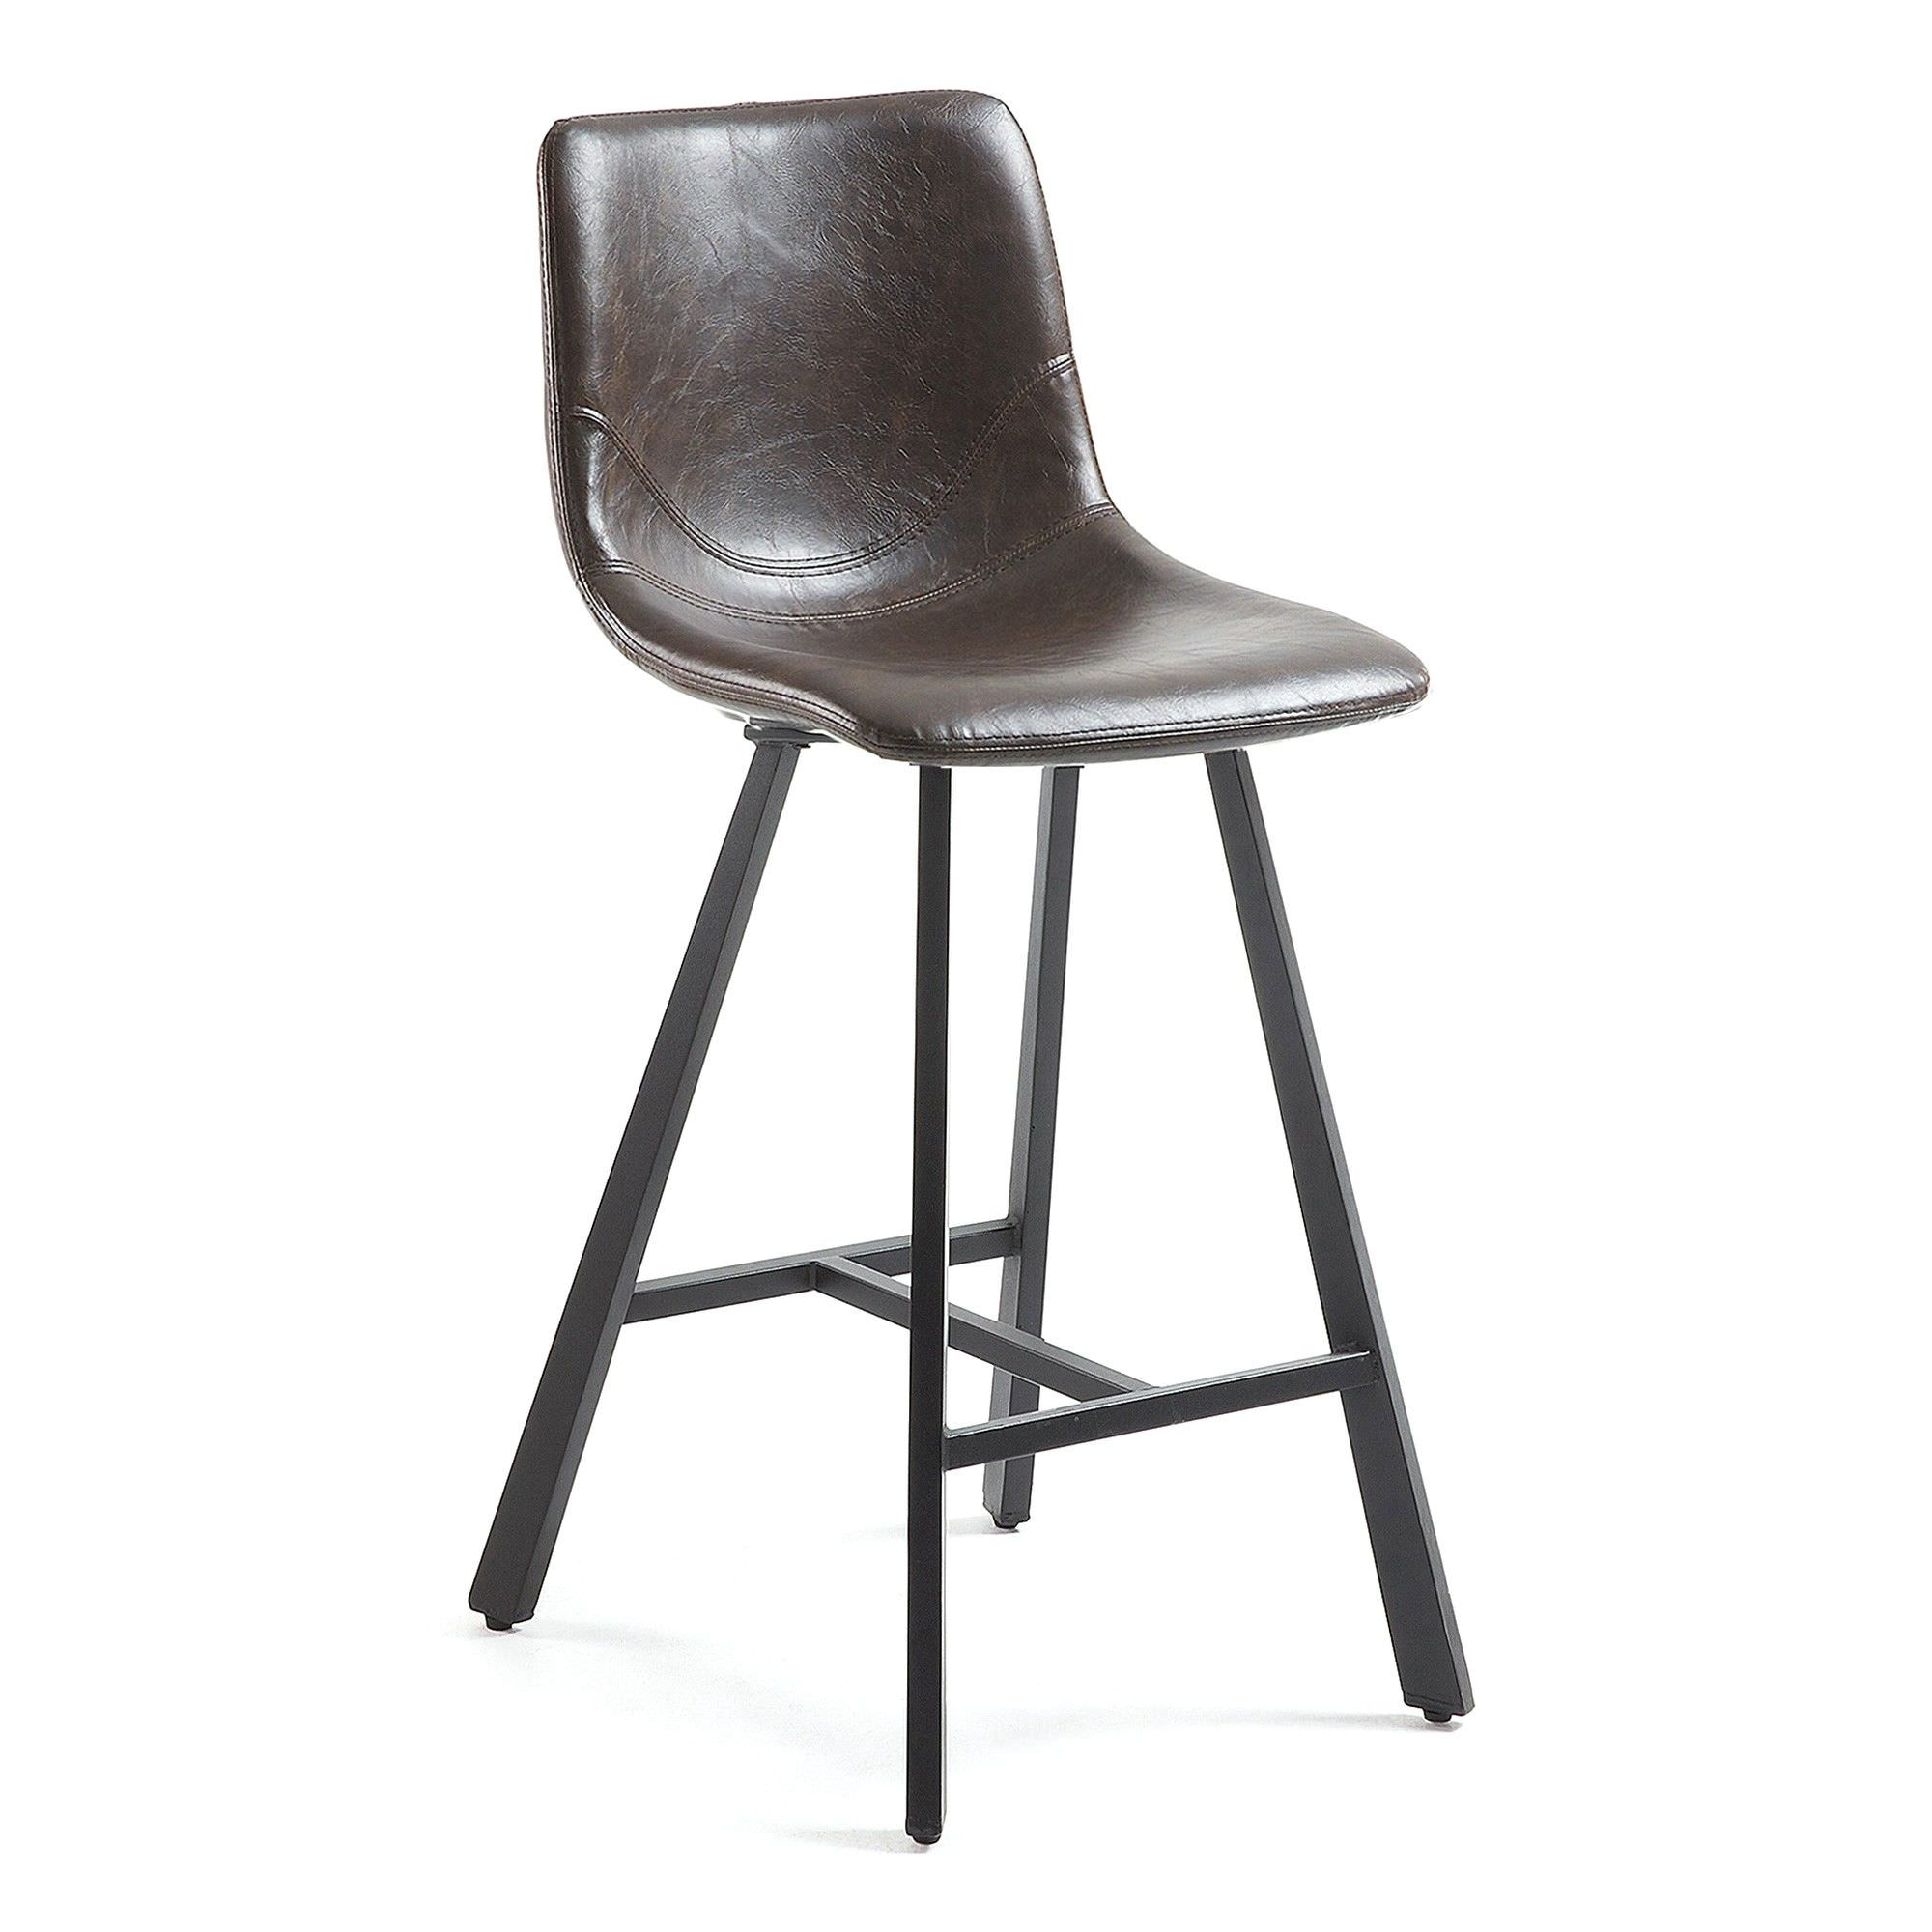 Kilburnie PU Leather Counter Stool, Chocolate